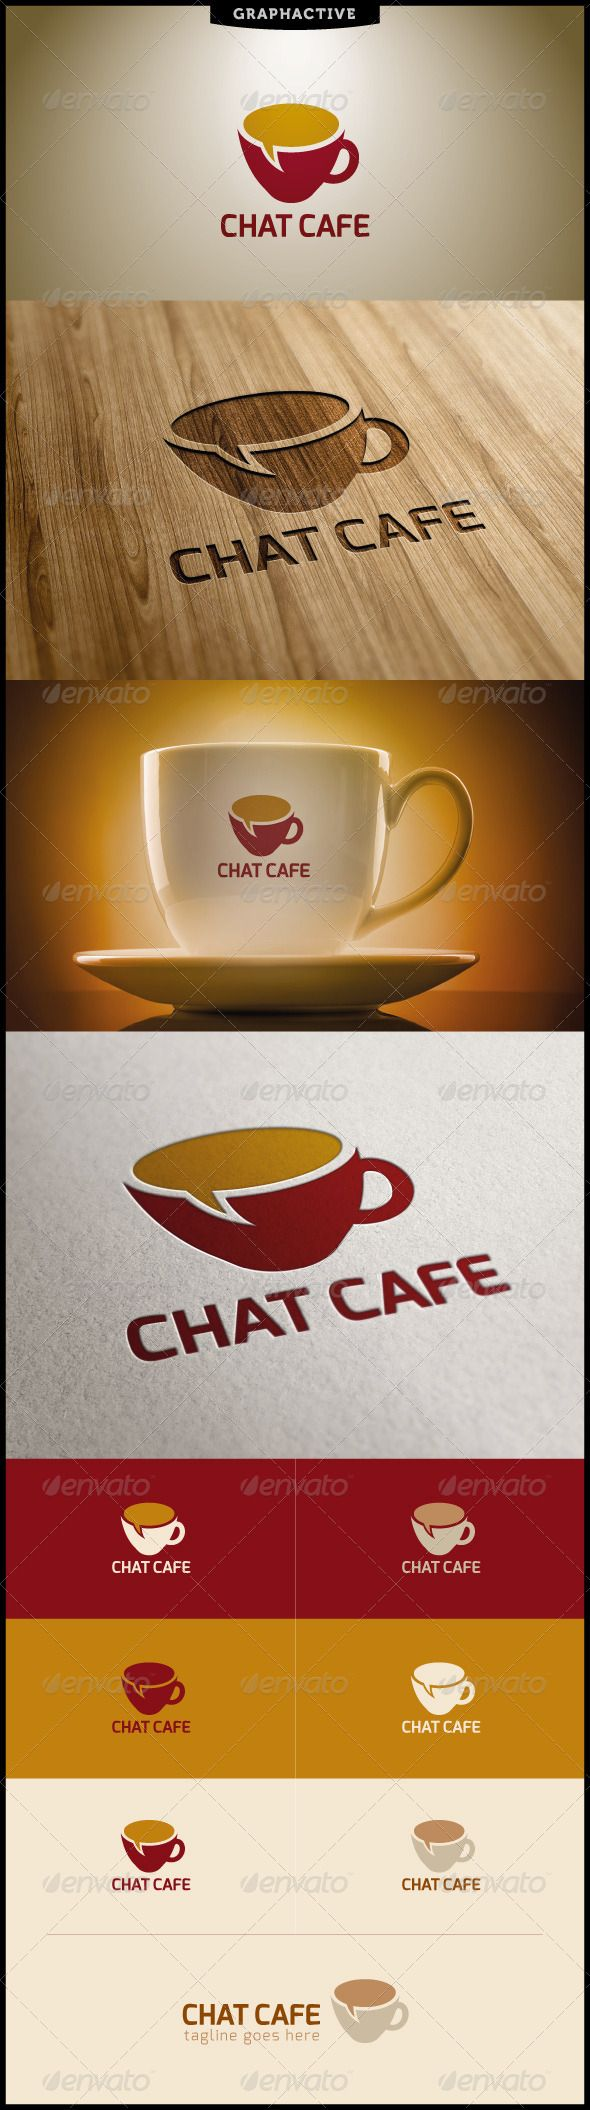 Chat Cafe Logo Template - GraphicRiver Item for Sale Simplistic yet direct logo, love everything about it.